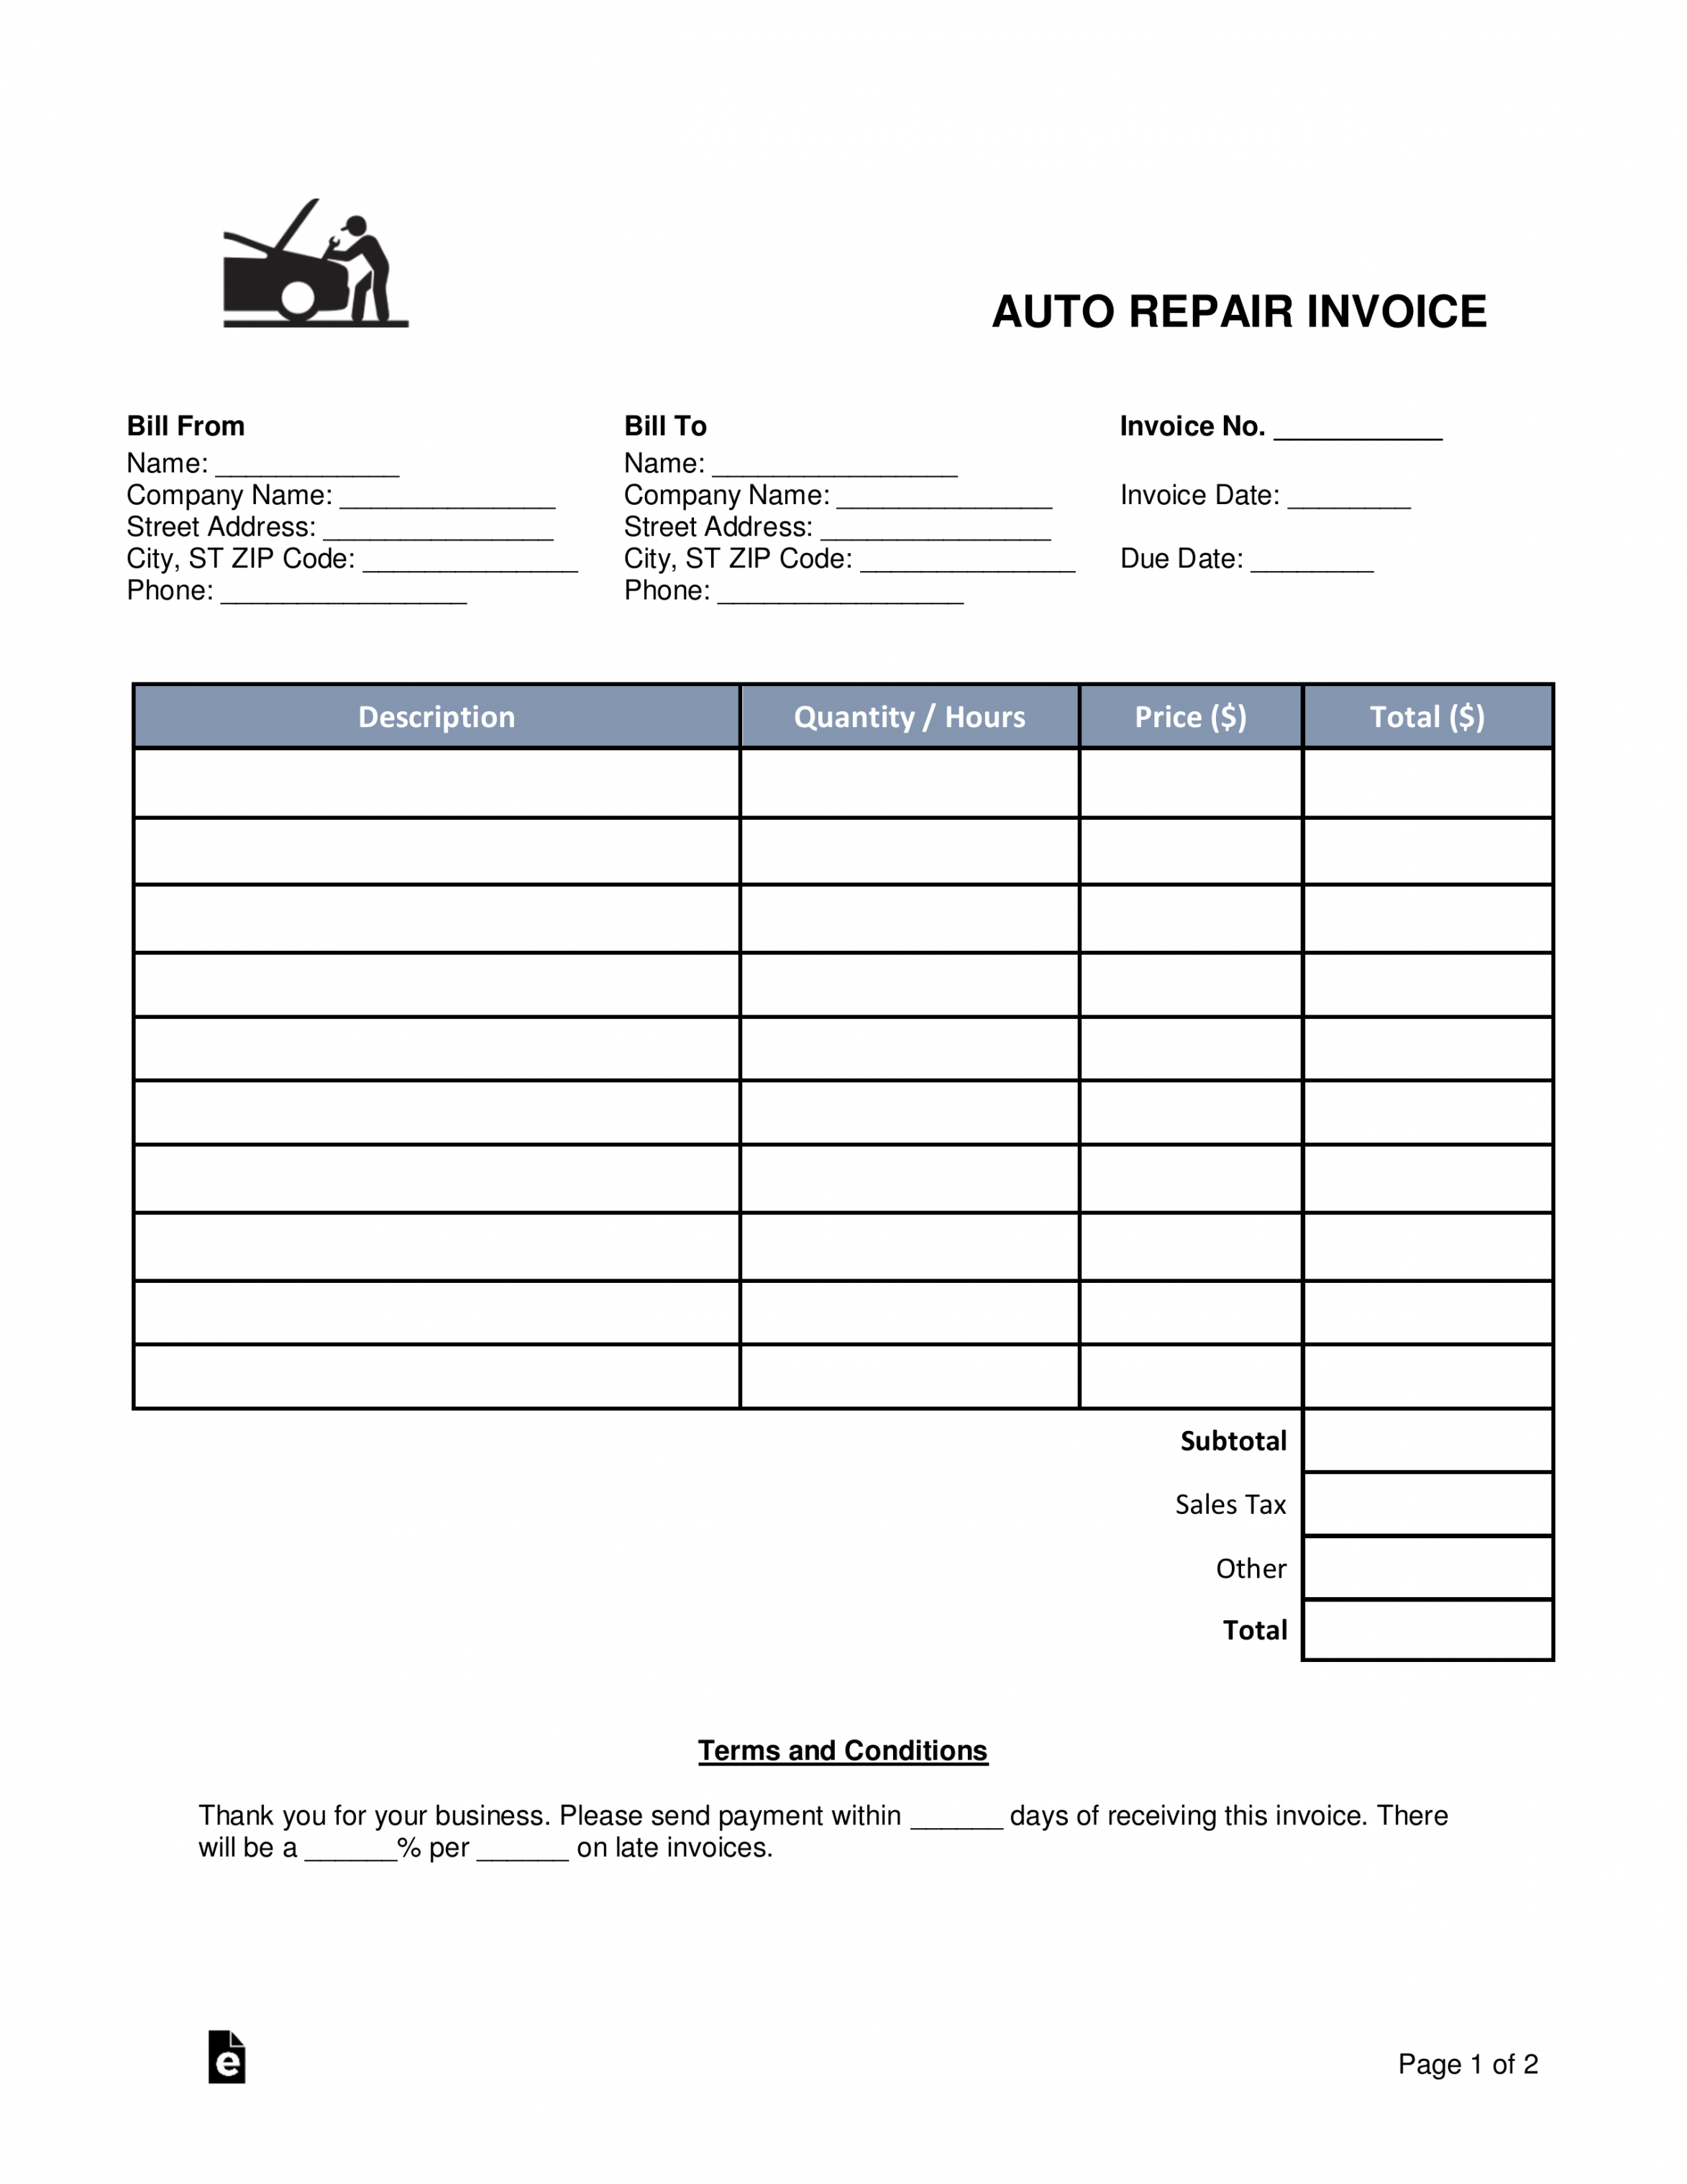 free 004 template ideas auto repair invoice staggering templates auto shop invoice template